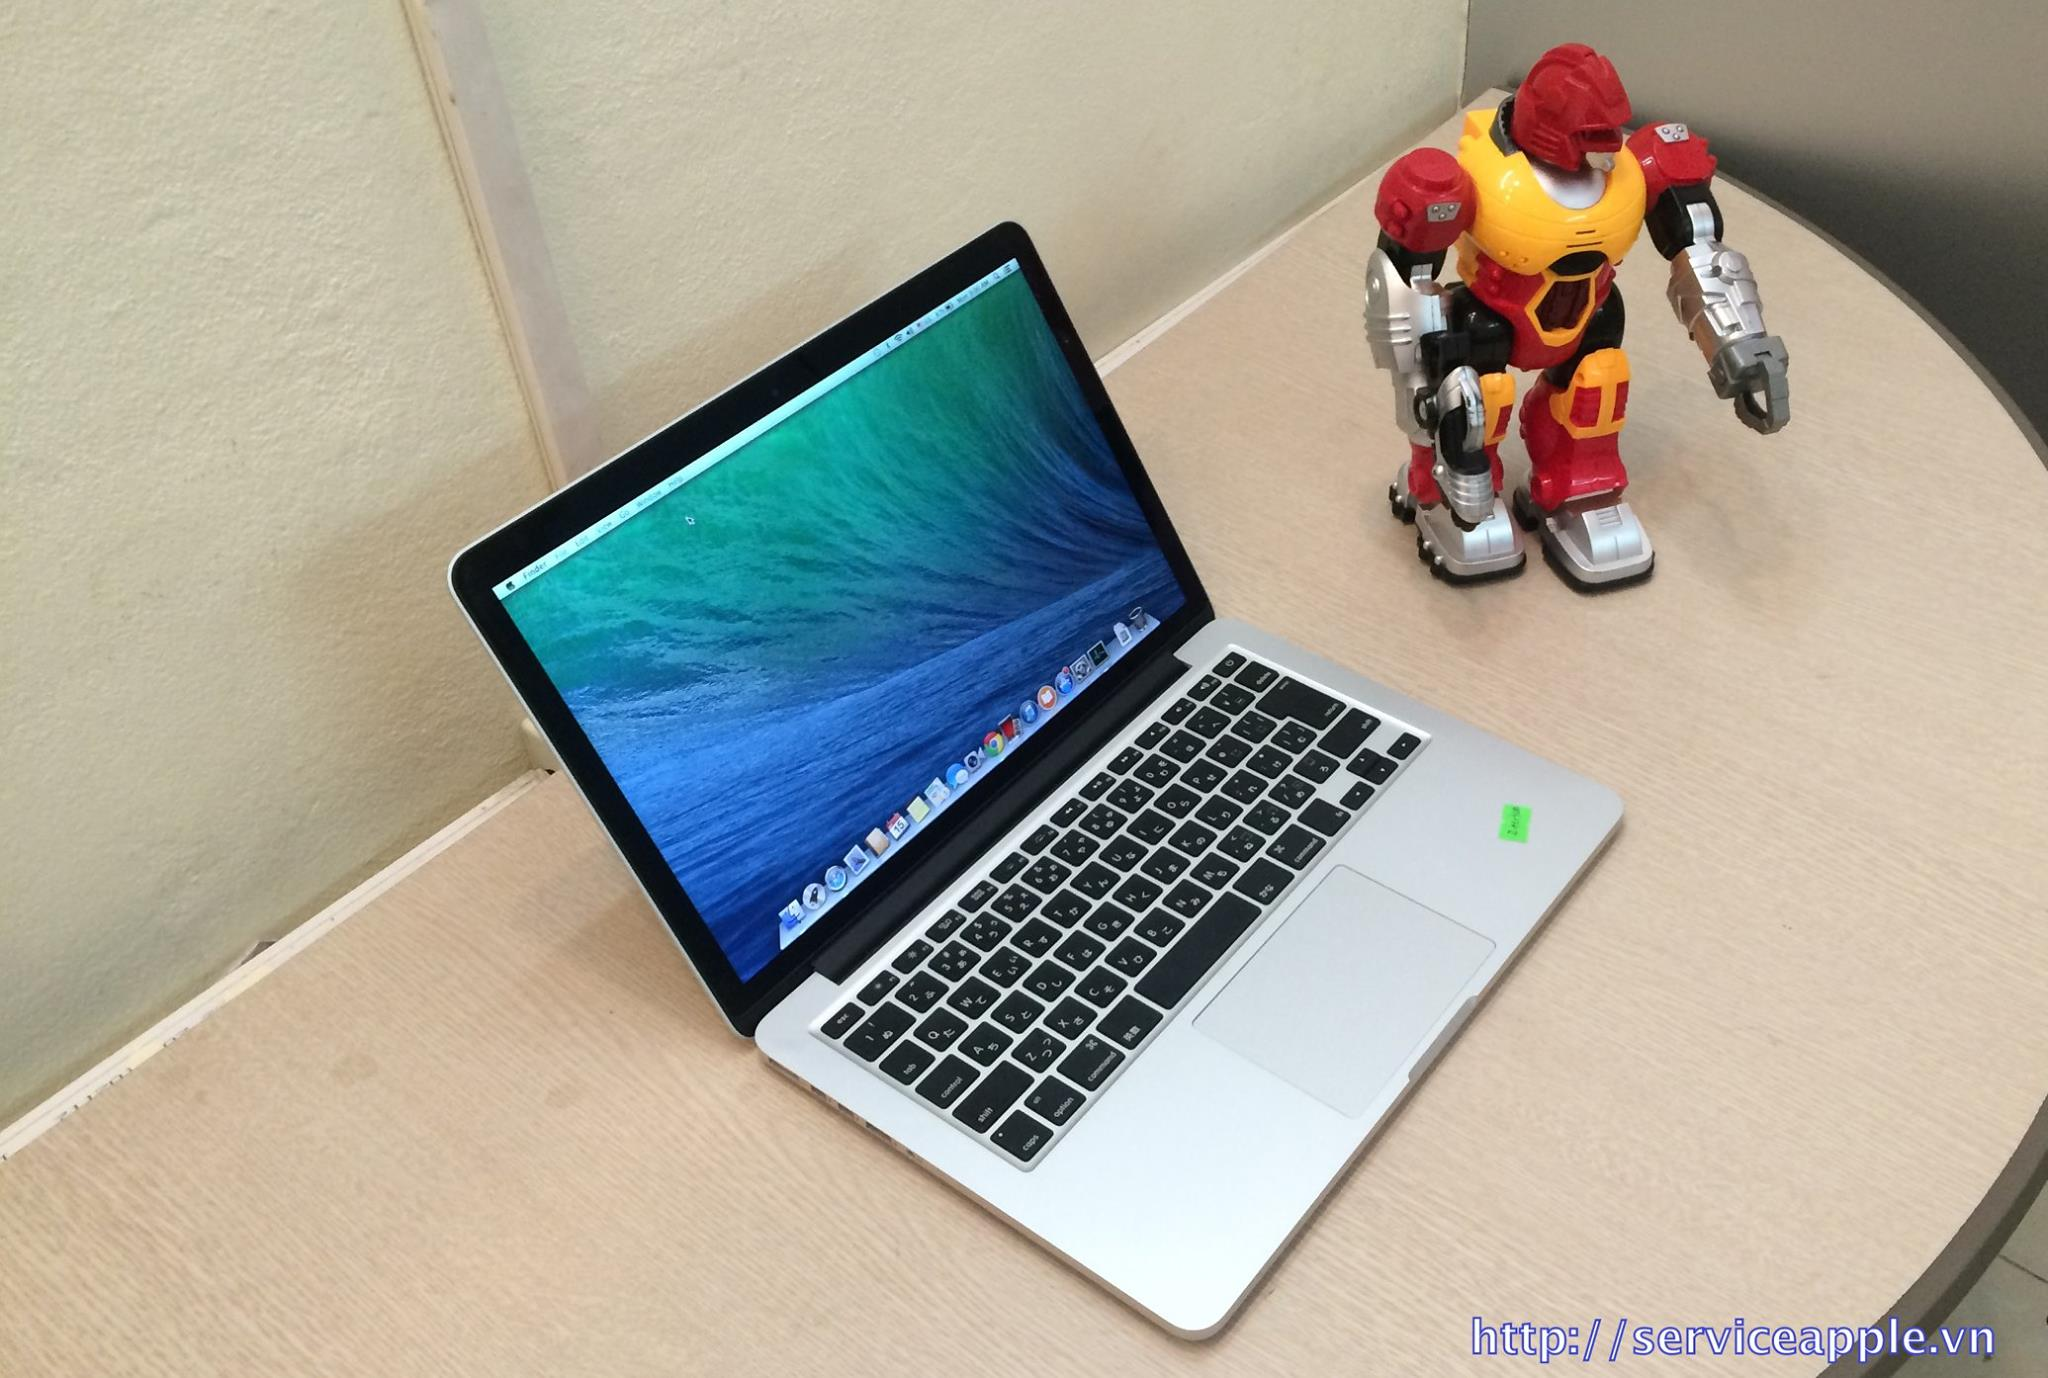 Macbook Pro Retina MD212 Full Option Ram 8GB